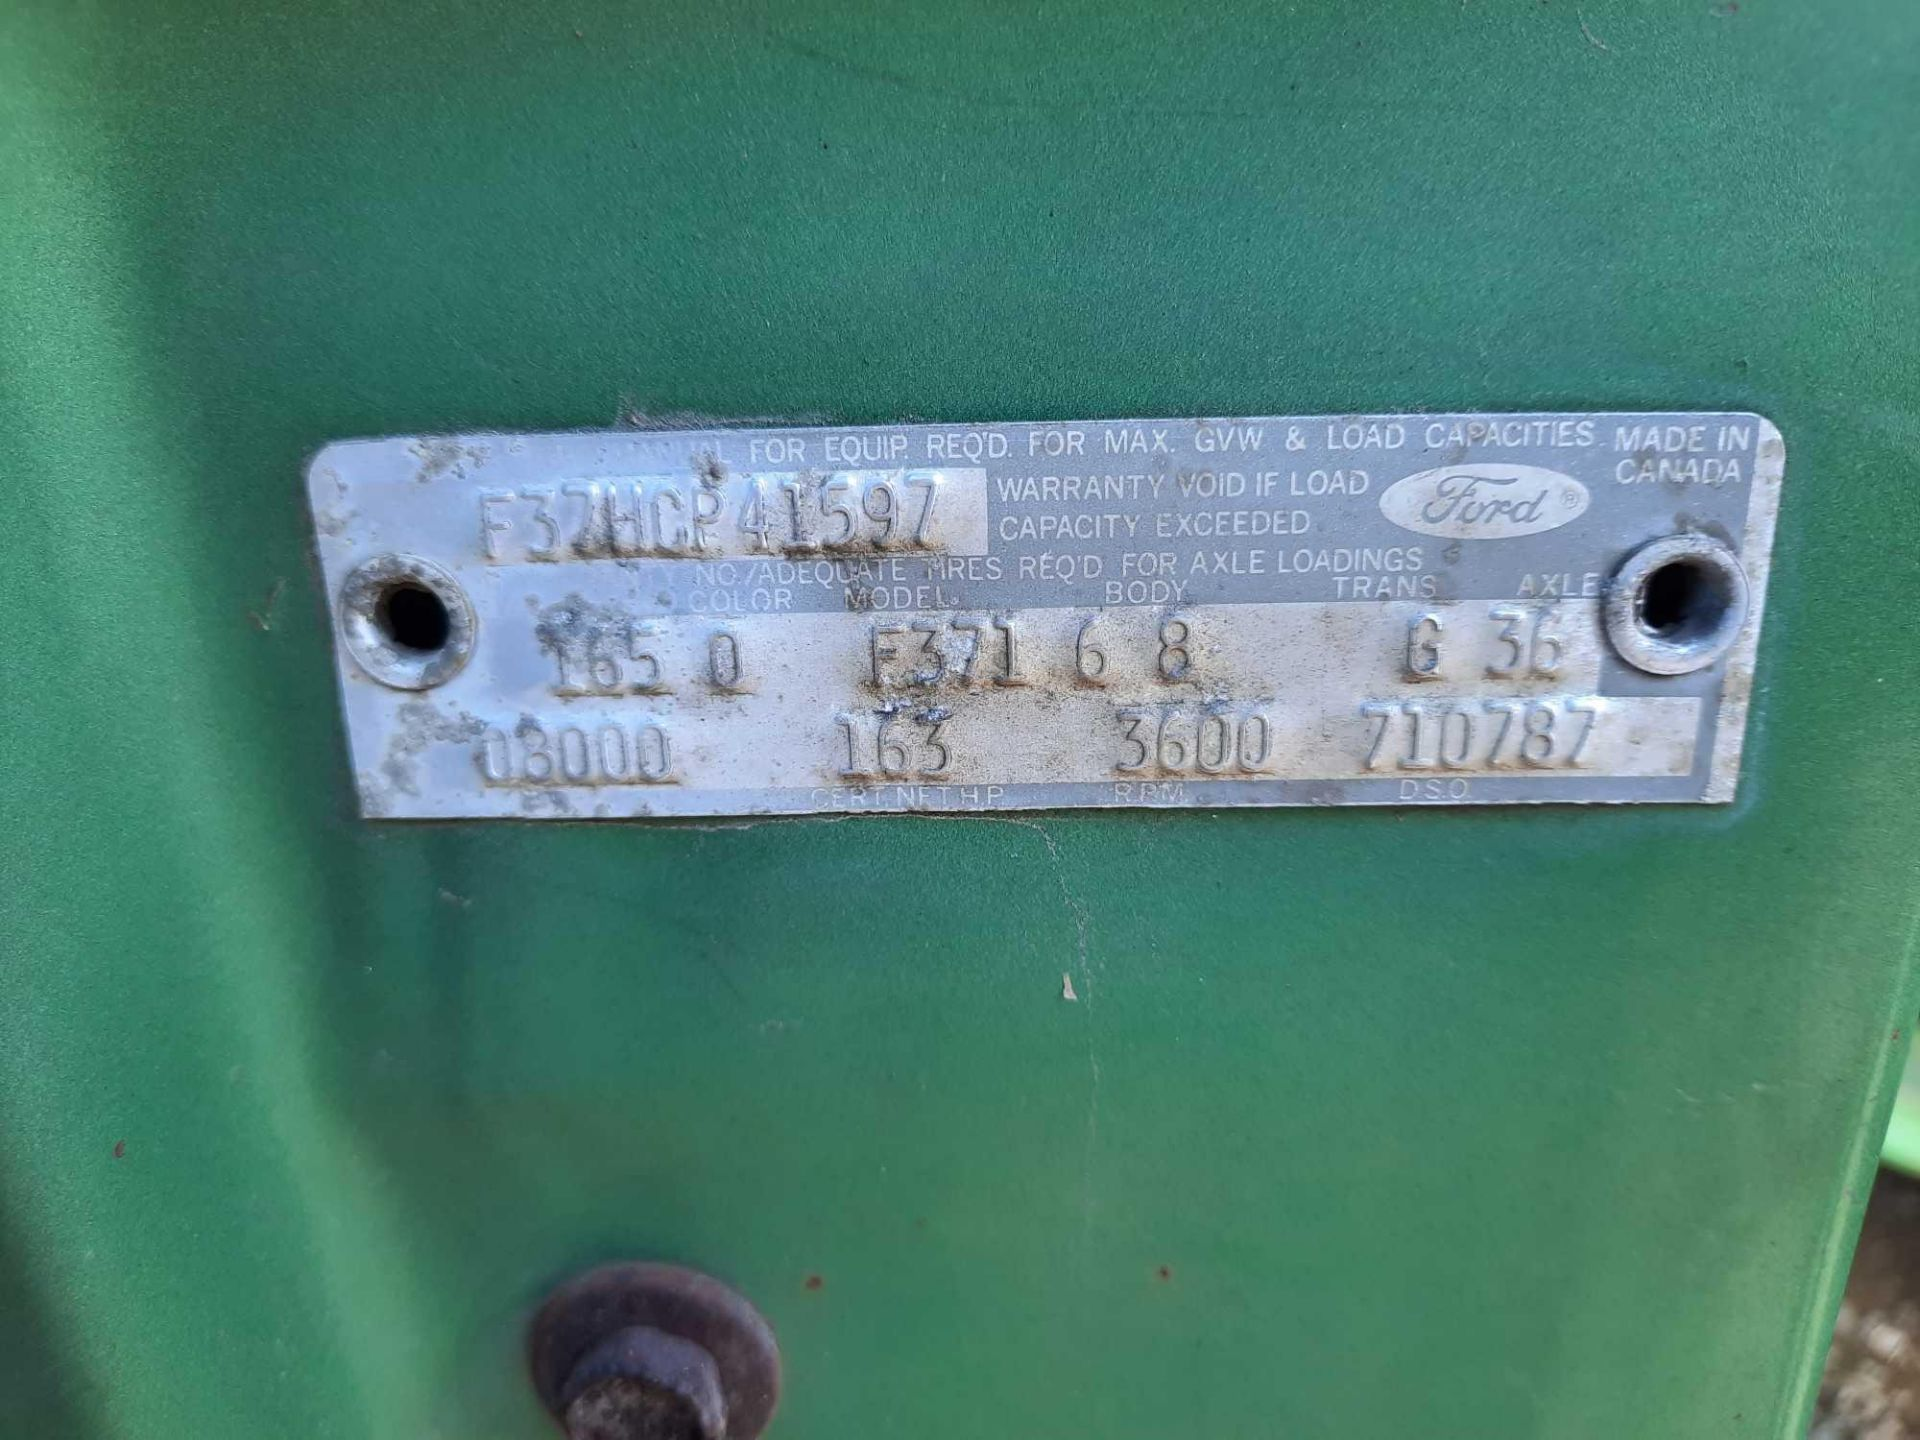 1972 FORD CREW CAB 350 PICK UP TRUCK (INOPERABLE) - Image 15 of 15